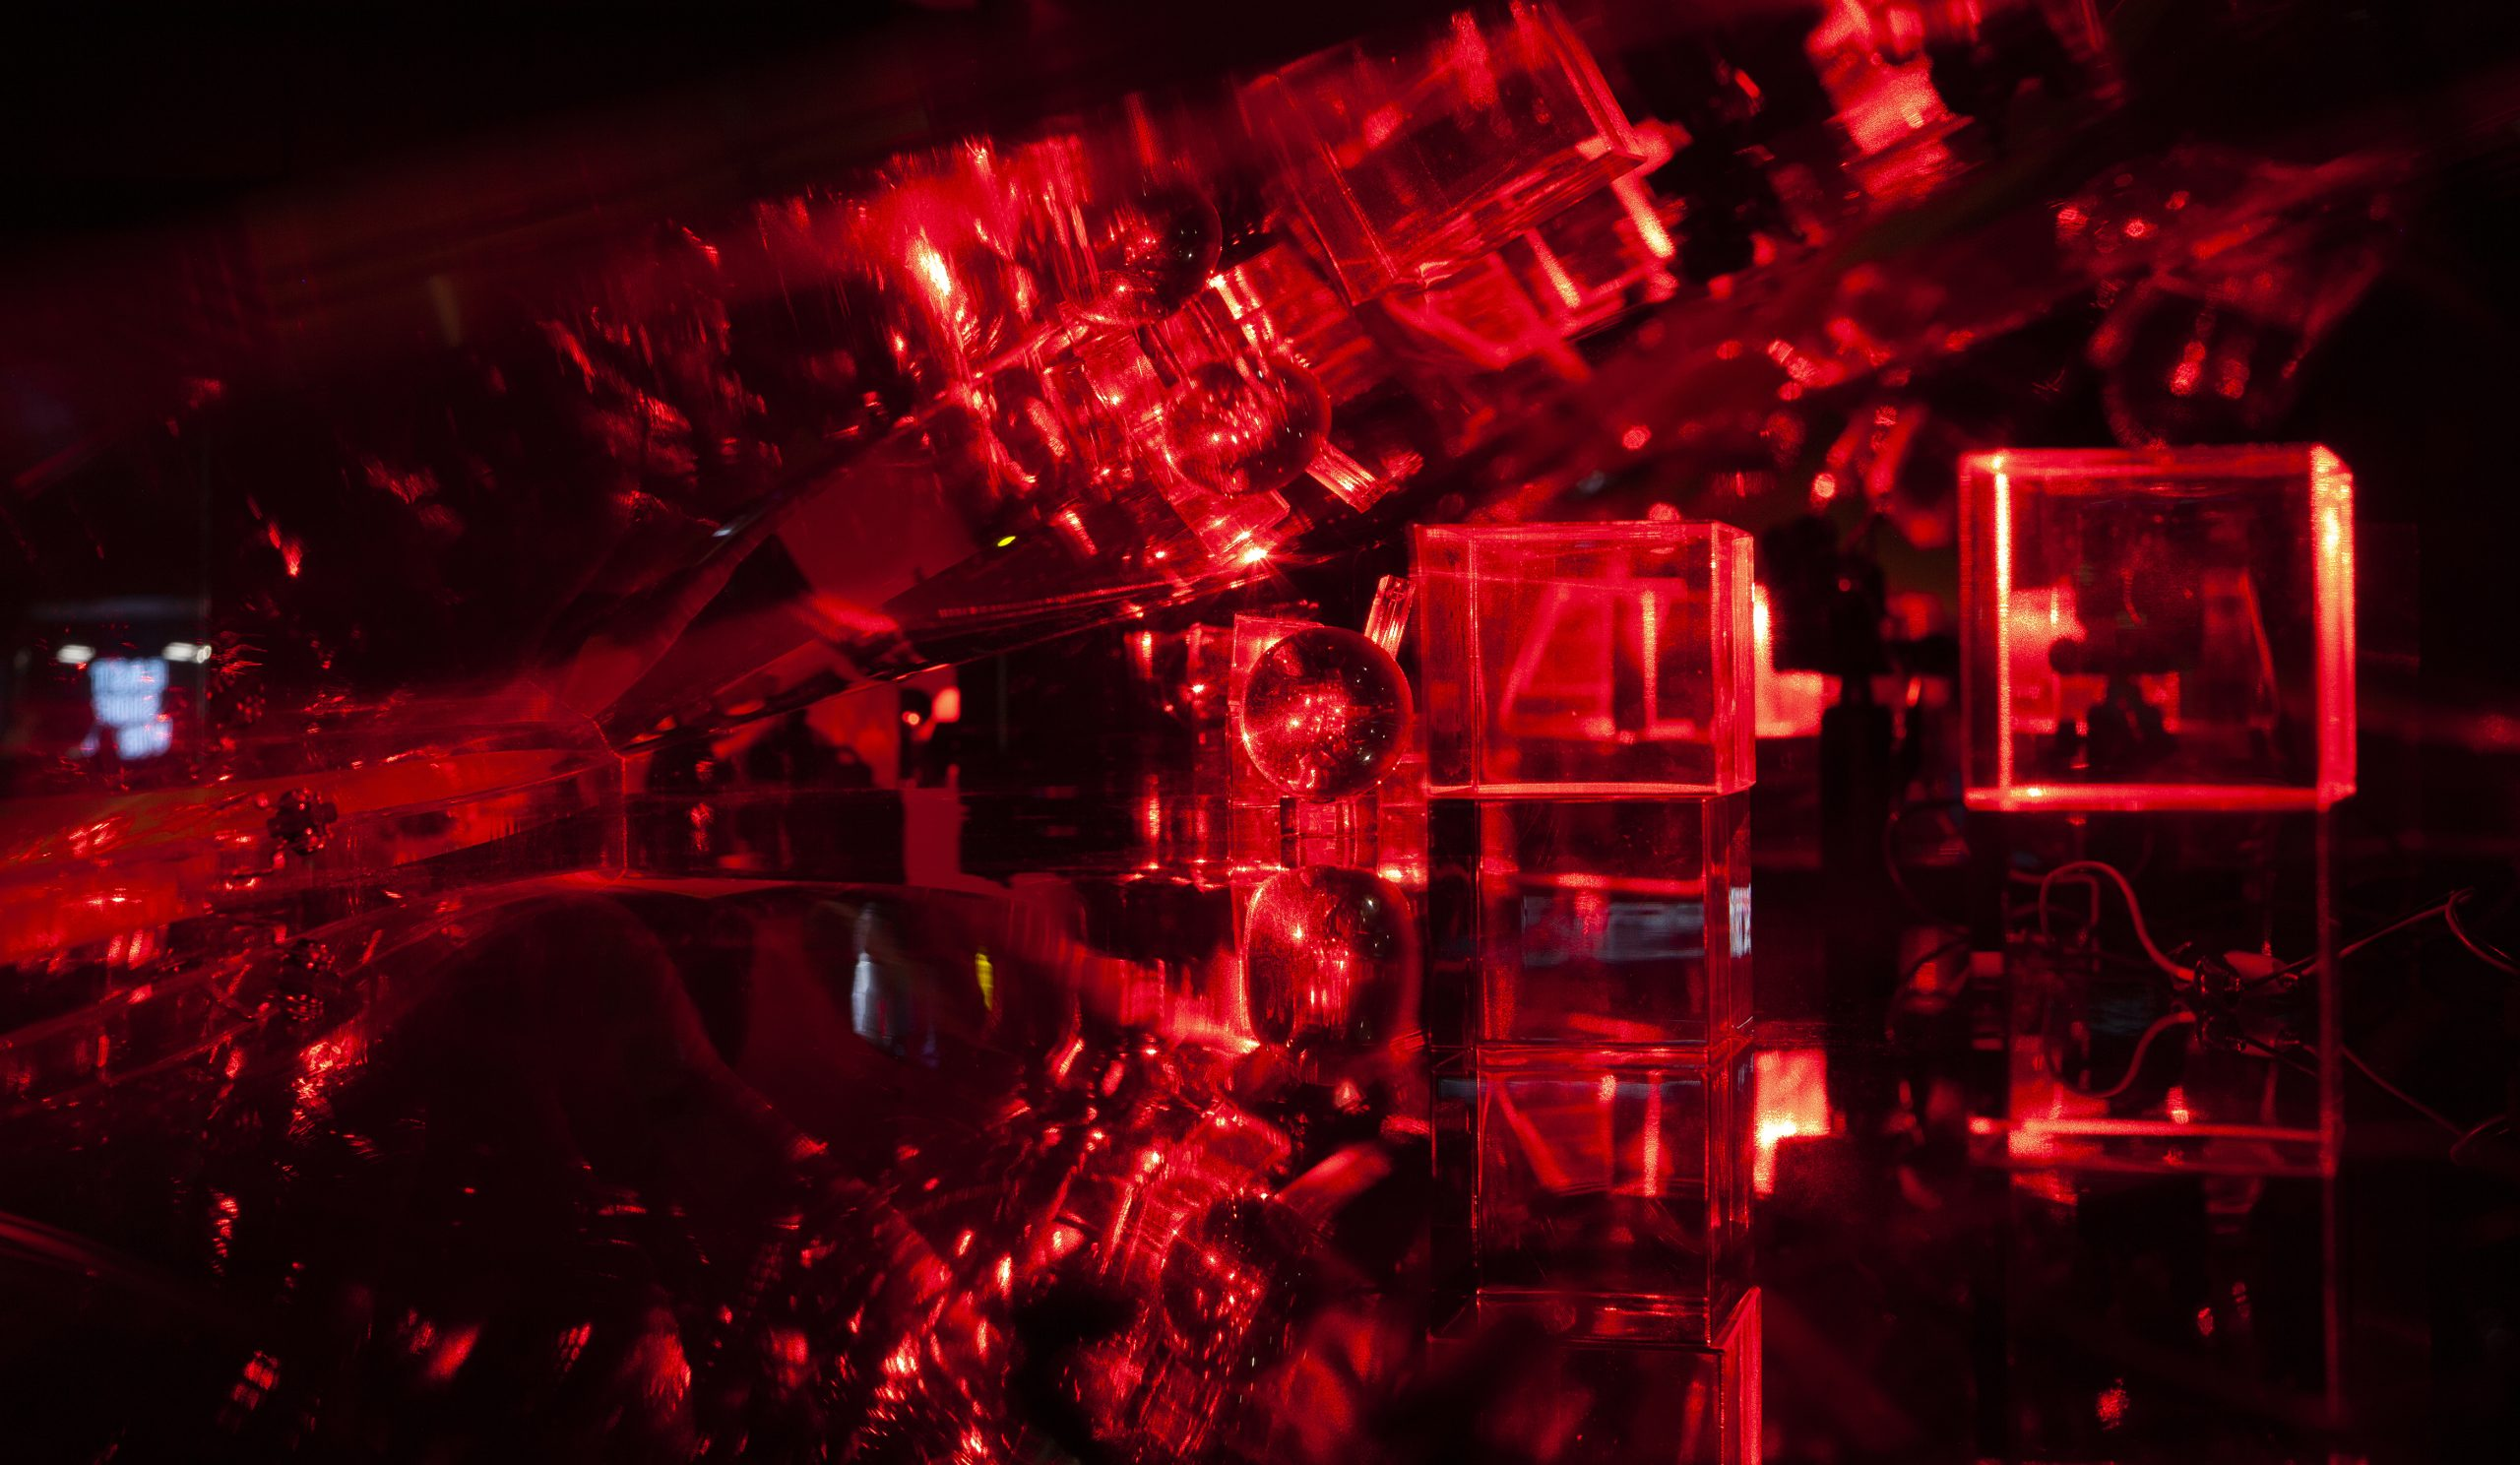 Clear cubes and a crystal ball lit by red lasers on black ground reflect into an endless circular pattern in a long clear sloped case that recedes into space.